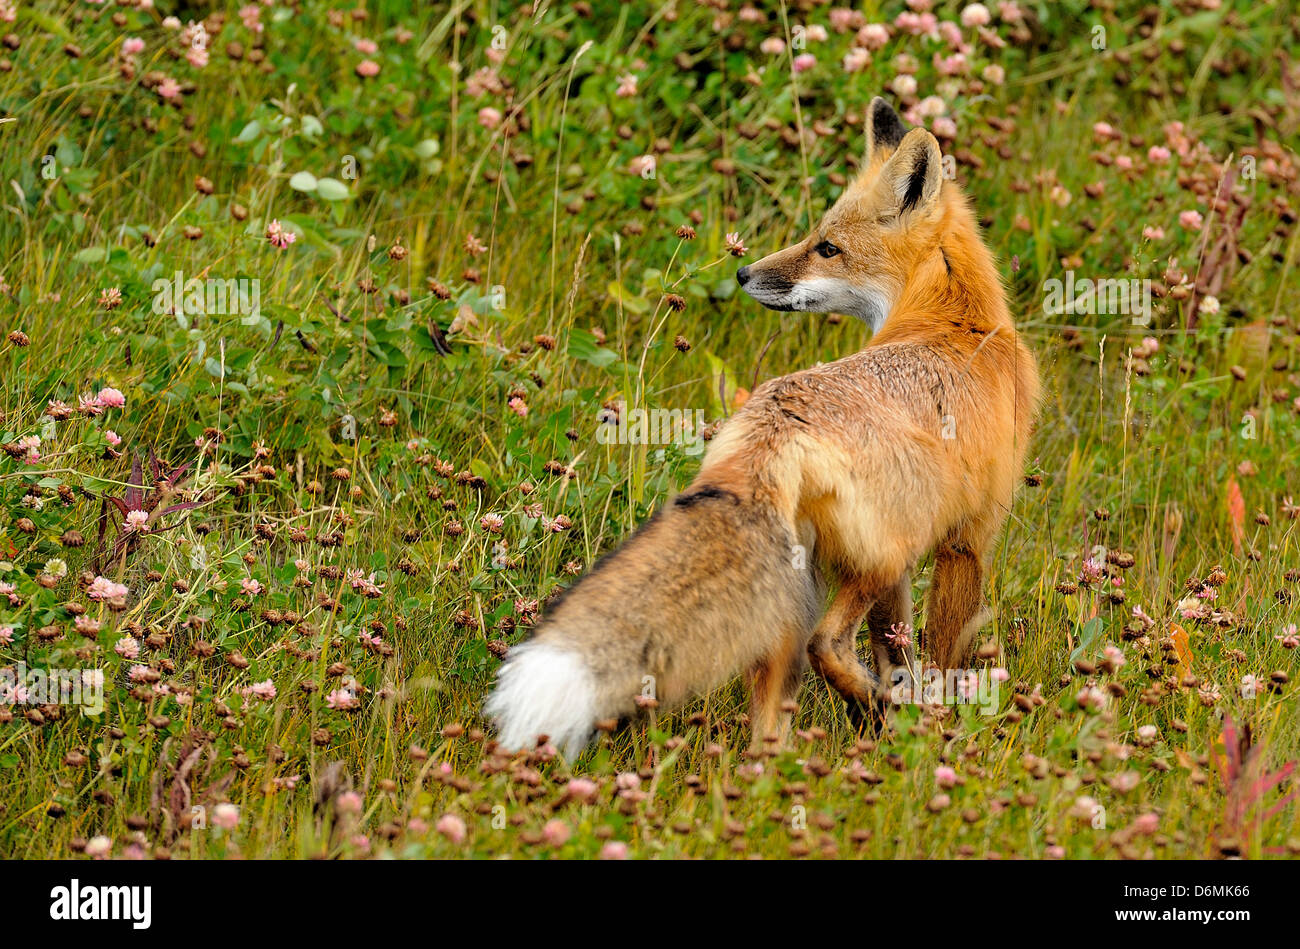 A young red fox looking back - Stock Image